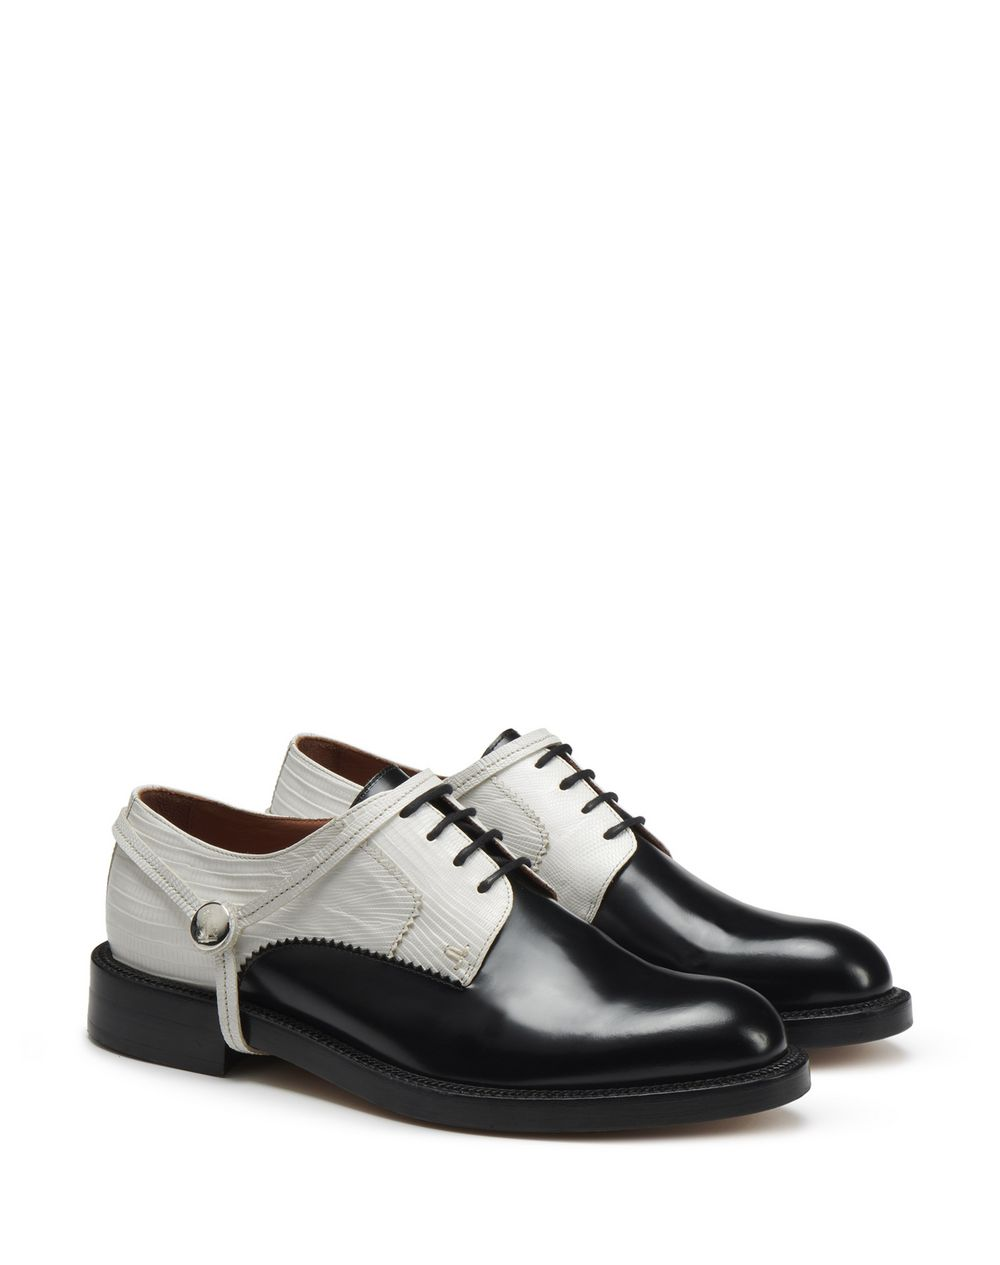 SHINY DUAL-MATERIAL DERBY SHOES - Lanvin